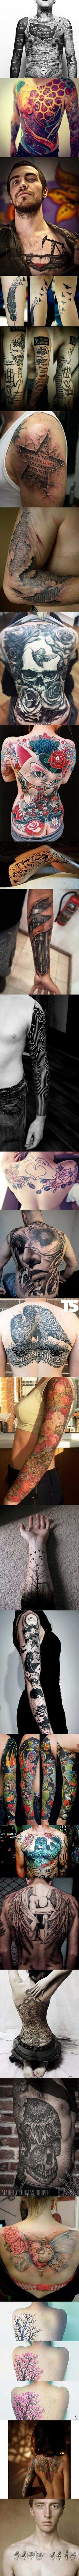 The Most Amazing Tattoos